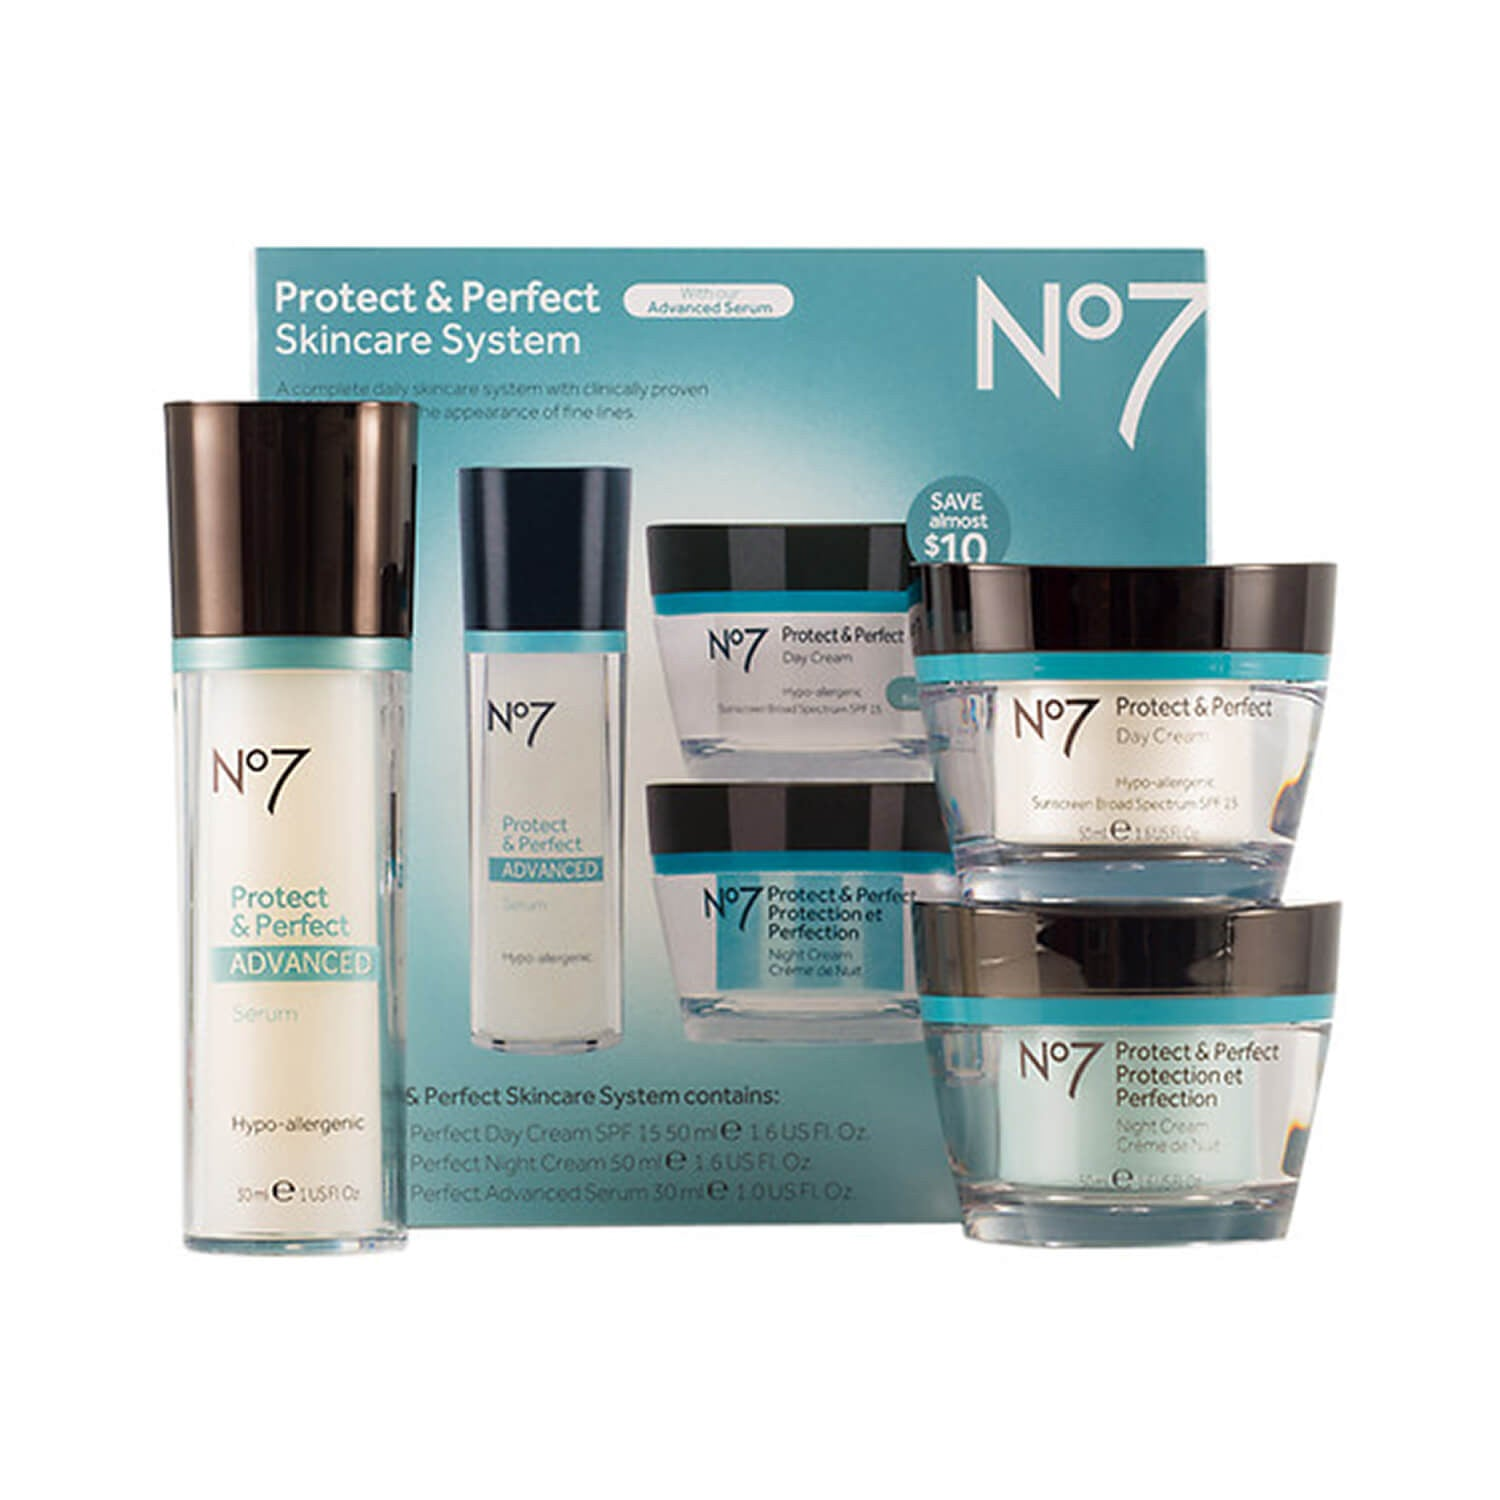 Boots No7 Protect Perfect Skincare System